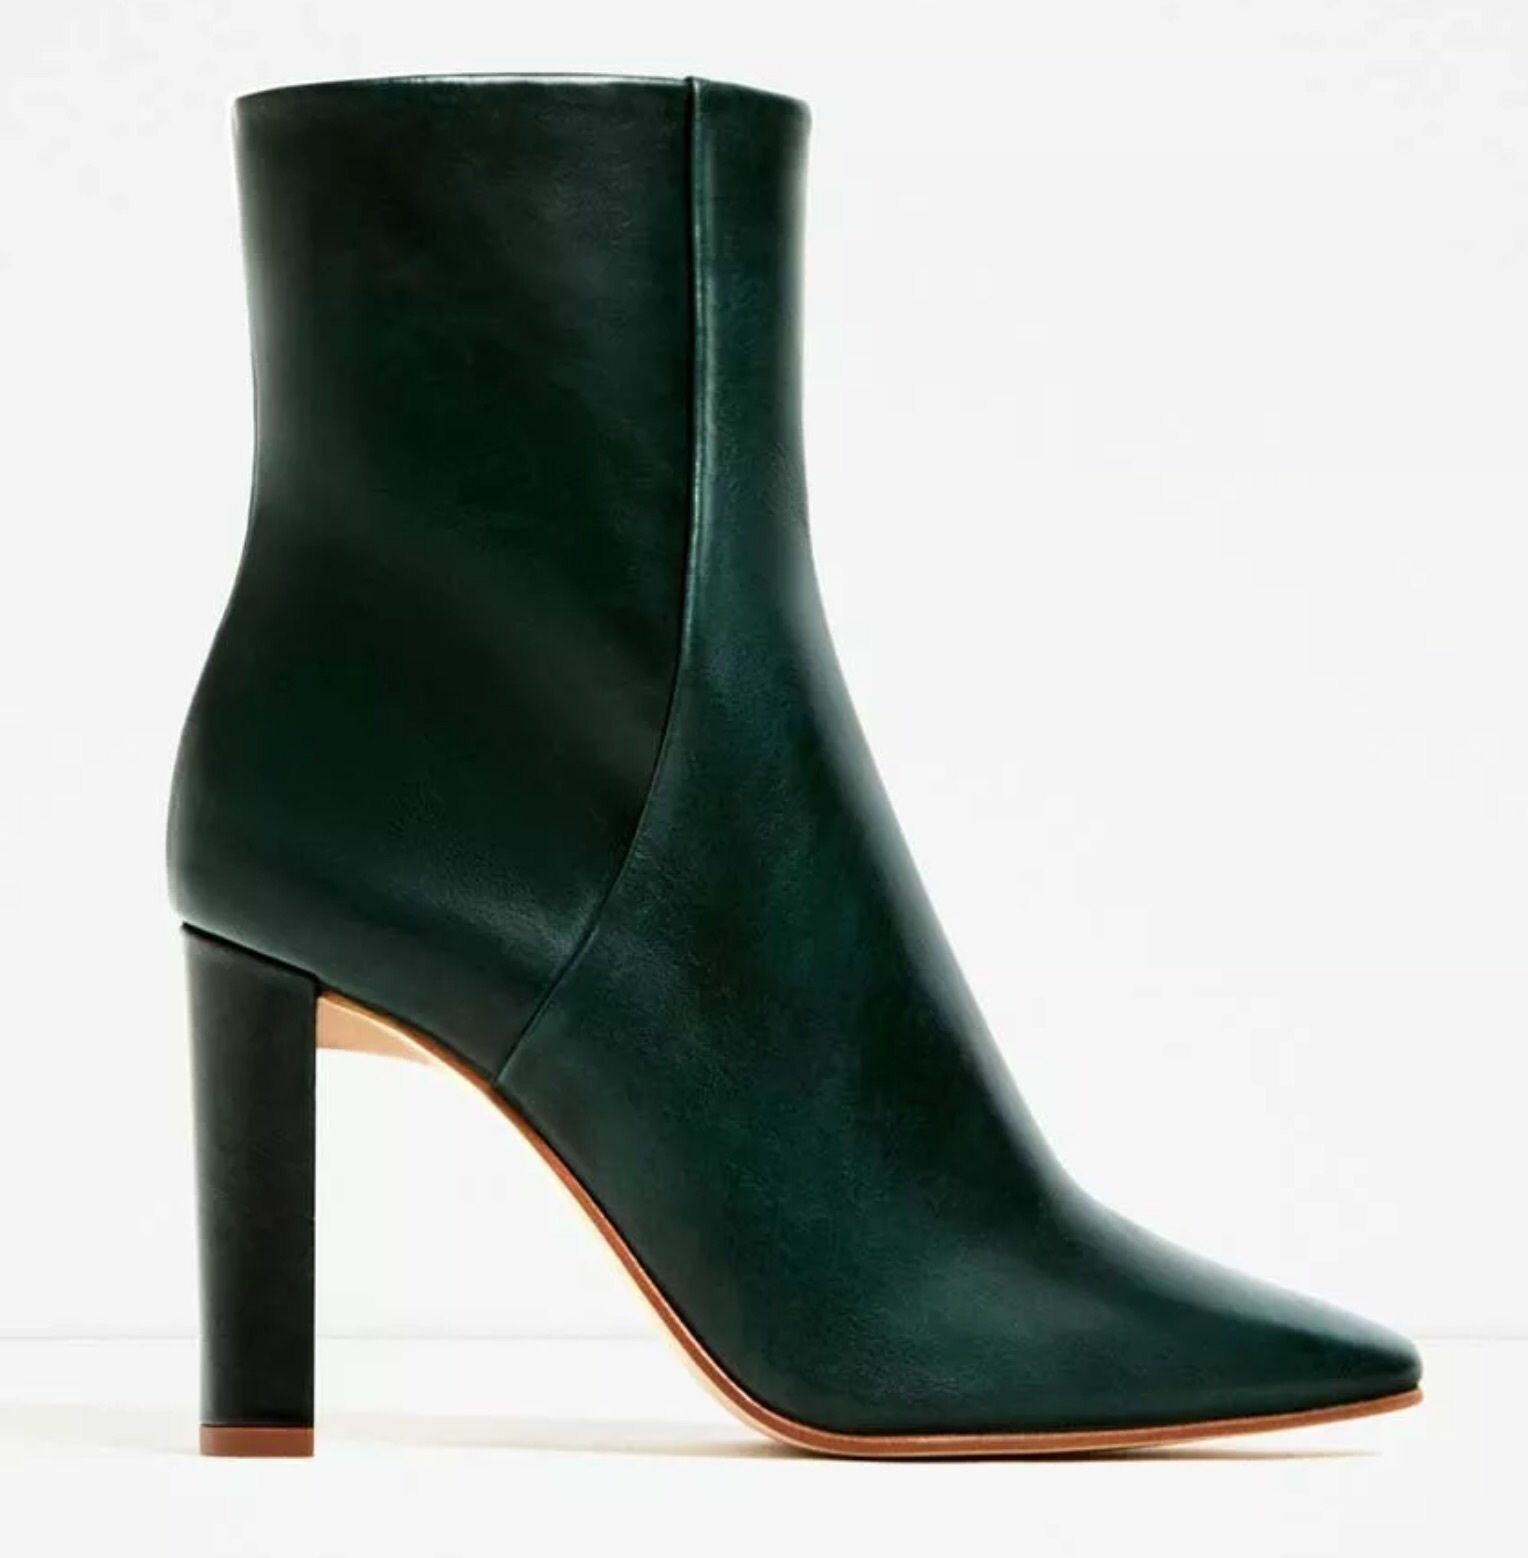 NWT ZARA US GREEN LEATHER HIGH HEEL ANKLE BOOTS US ZARA 5 EU 35 699713